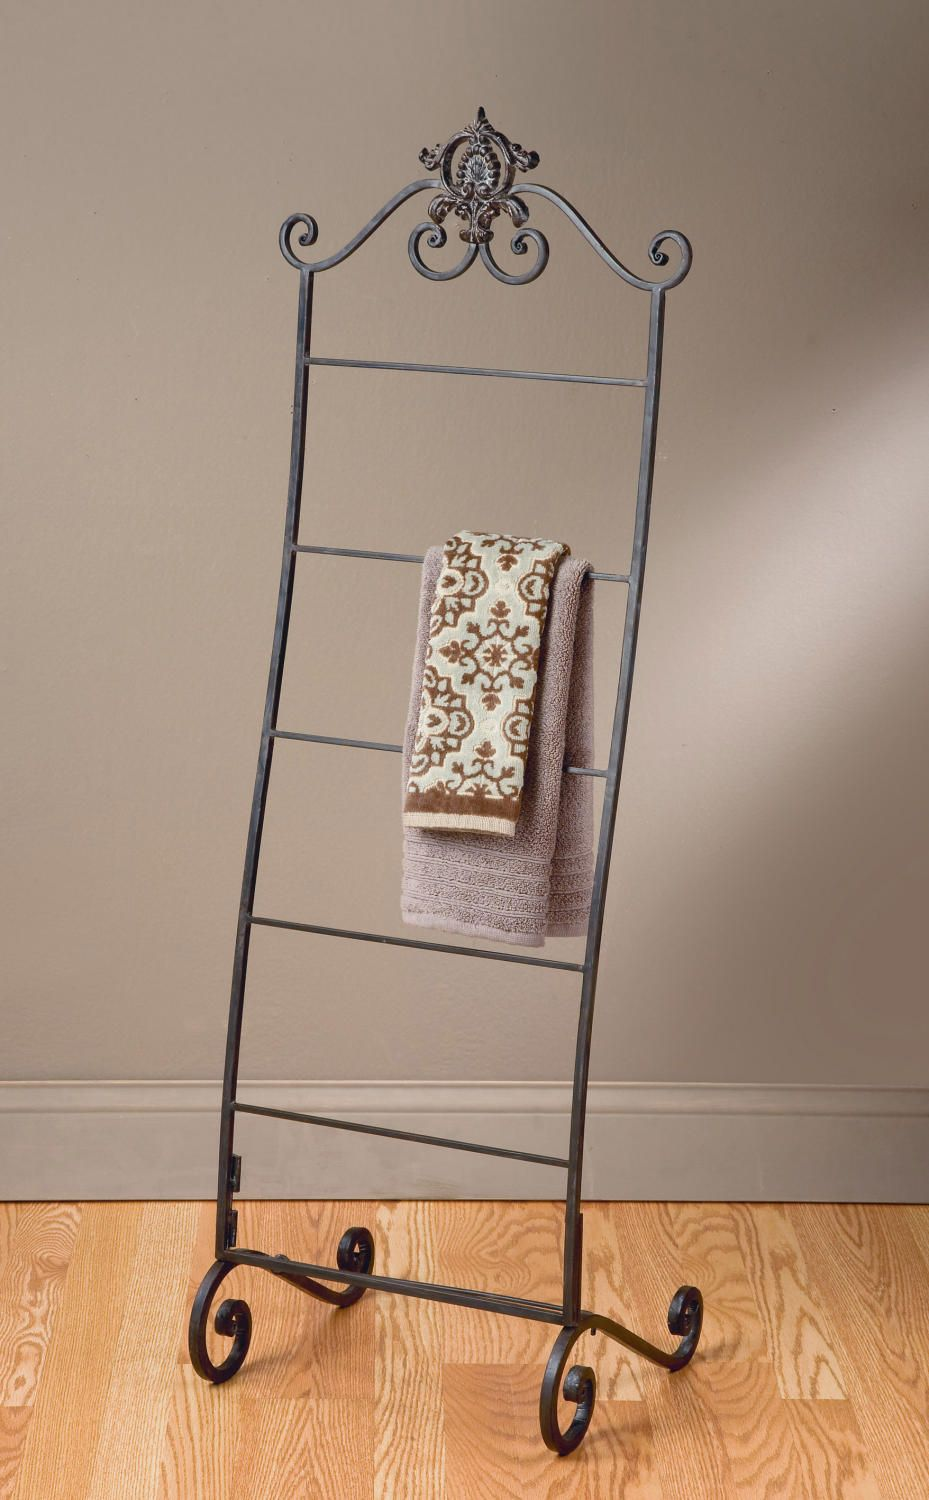 Scarf Towel Floor Rack Add A Touch Of Class With Our Floor